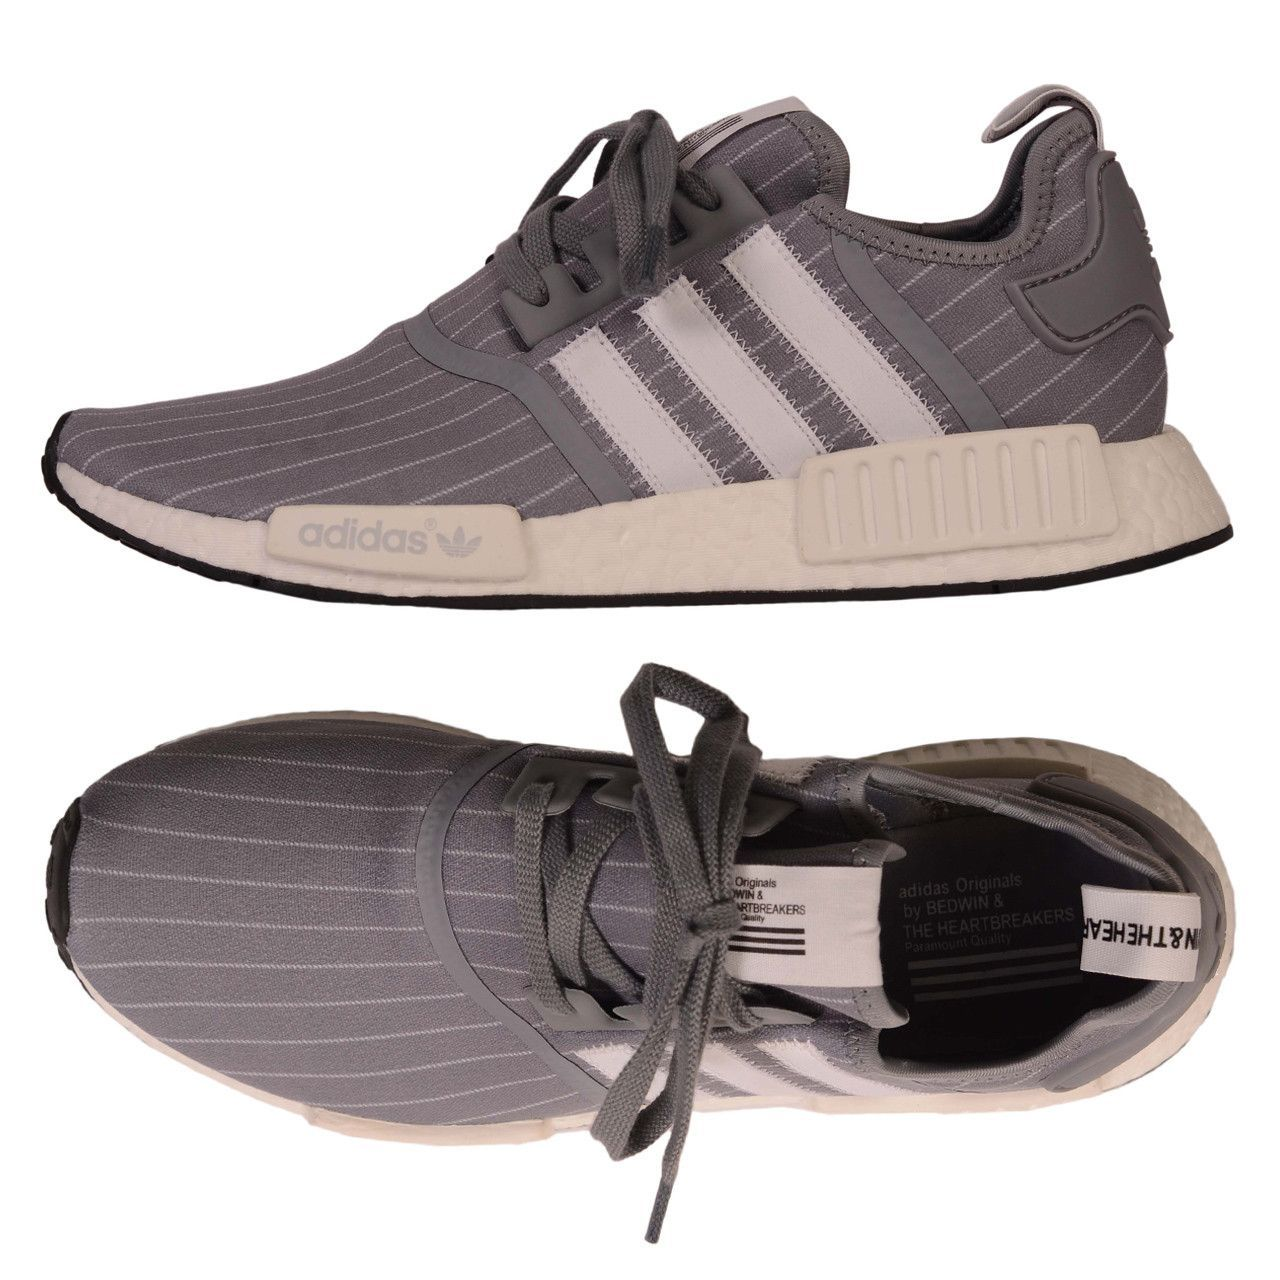 BEDWIN   THE HEARTBREAKERS X ADIDAS Gray NMD R1 Pinstripe Shoes NEW US 11 73d37962b779c